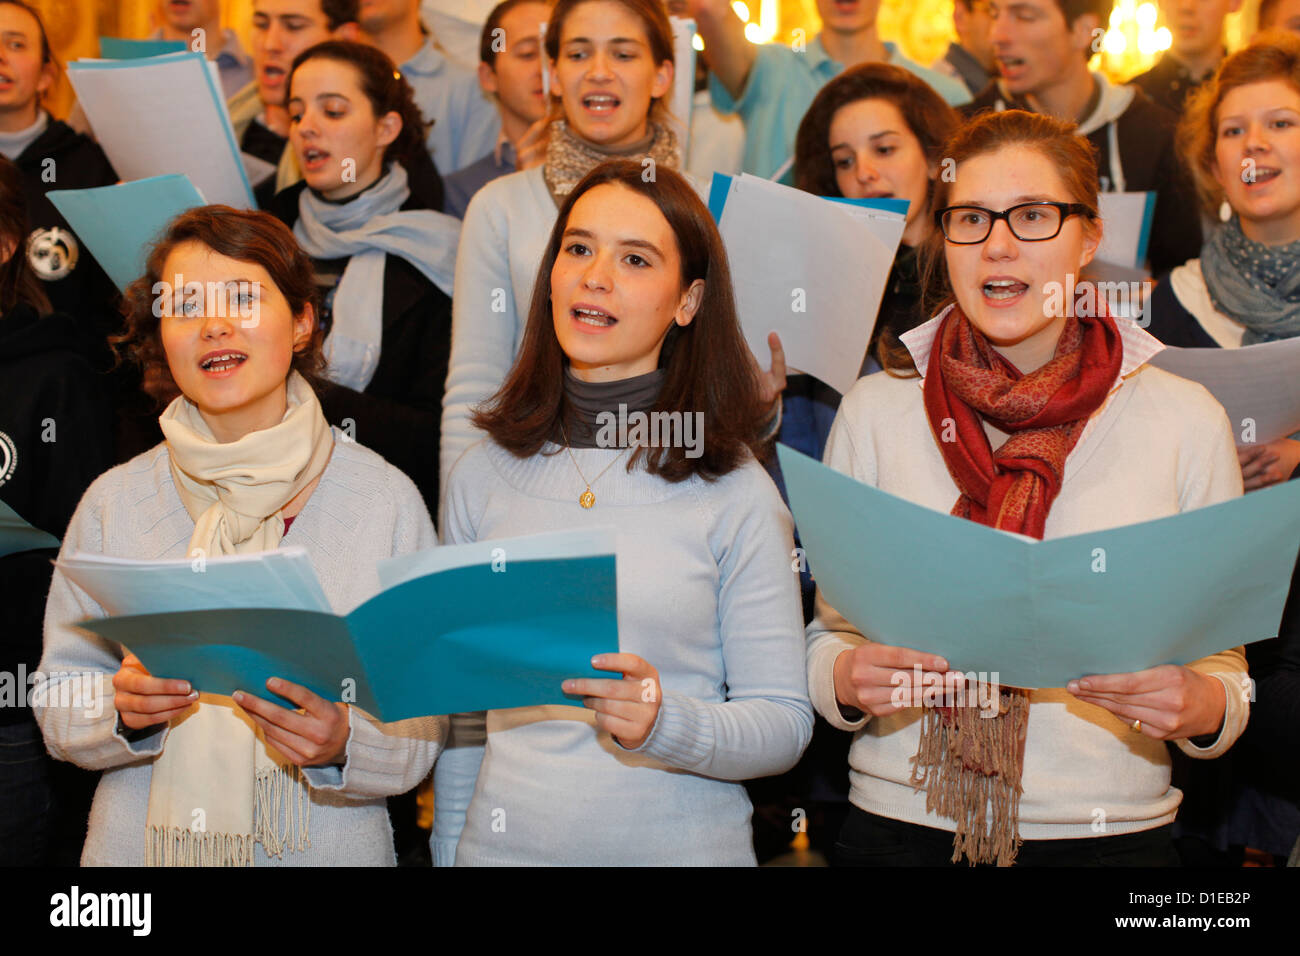 Choir in Notre Dame de Fourviere Basilica during the Fete des Lumieres held every year on december 8, Lyon, France - Stock Image